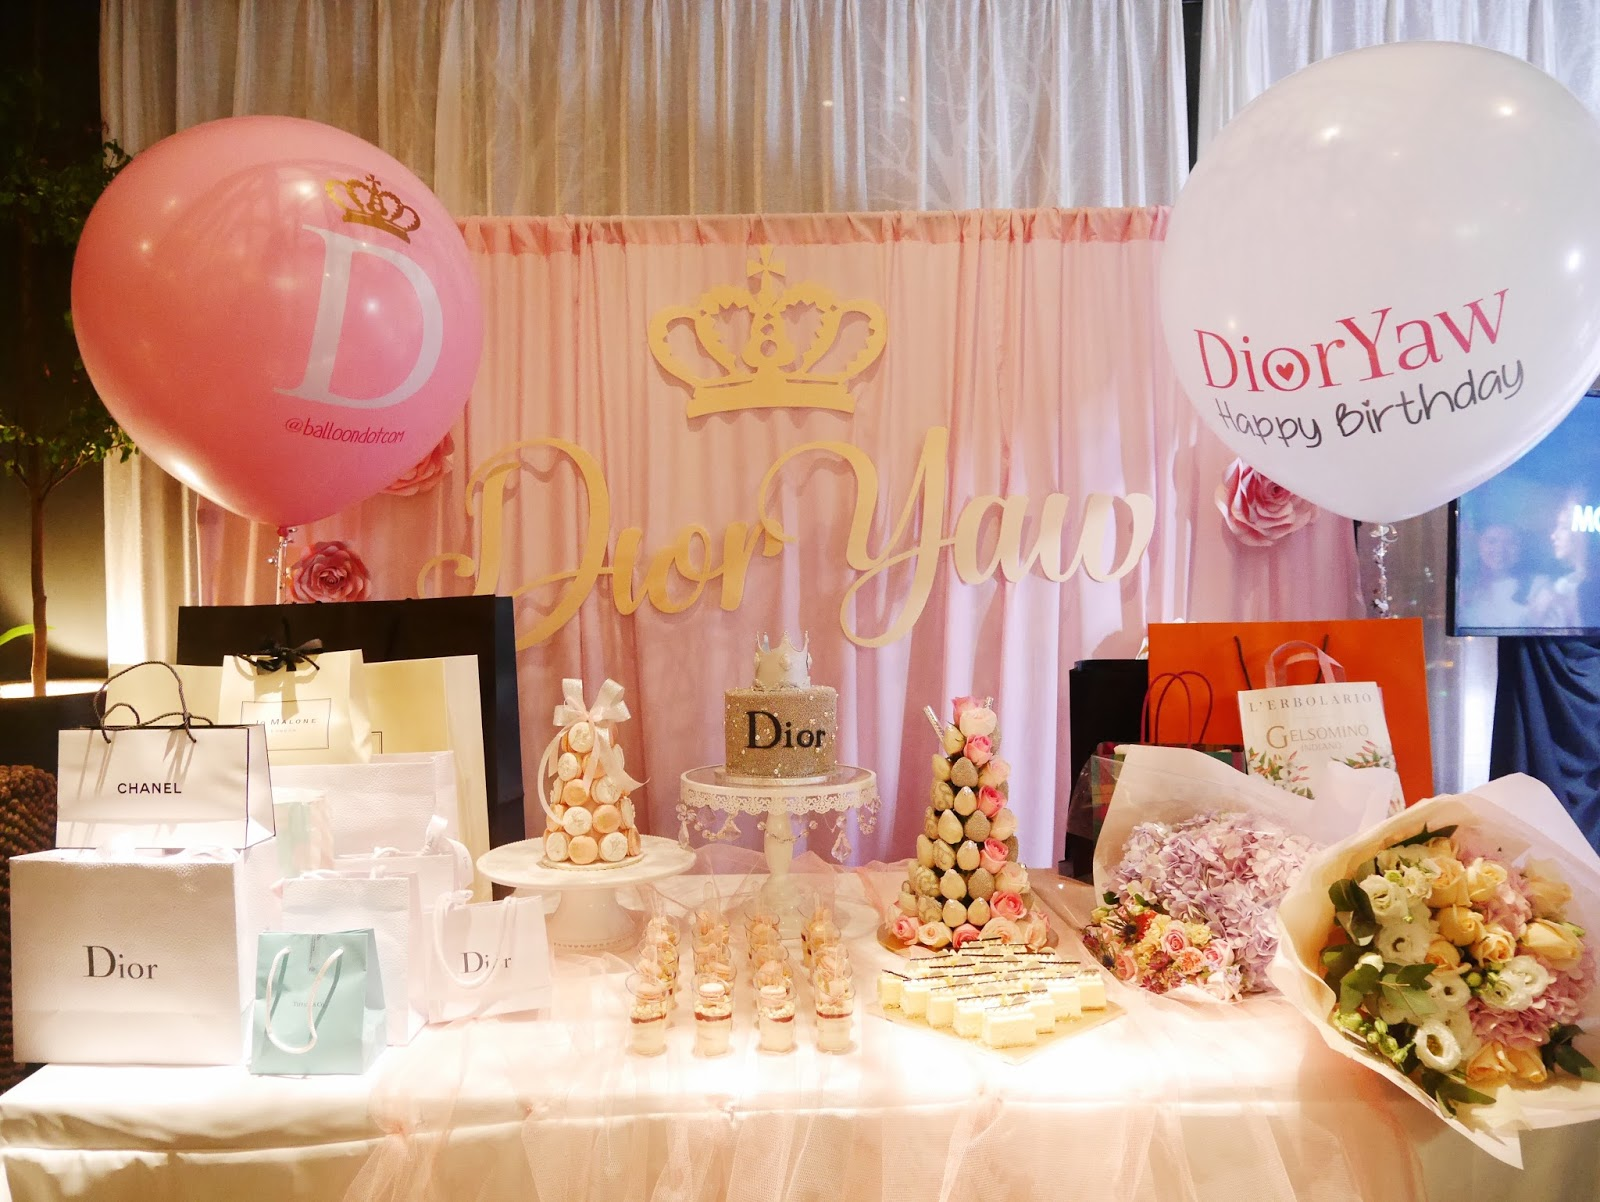 Party So Lovely With The Flowers We Also Have Some Balloons Arranged On Tables By BalloonDotCom All Are Done Them Too